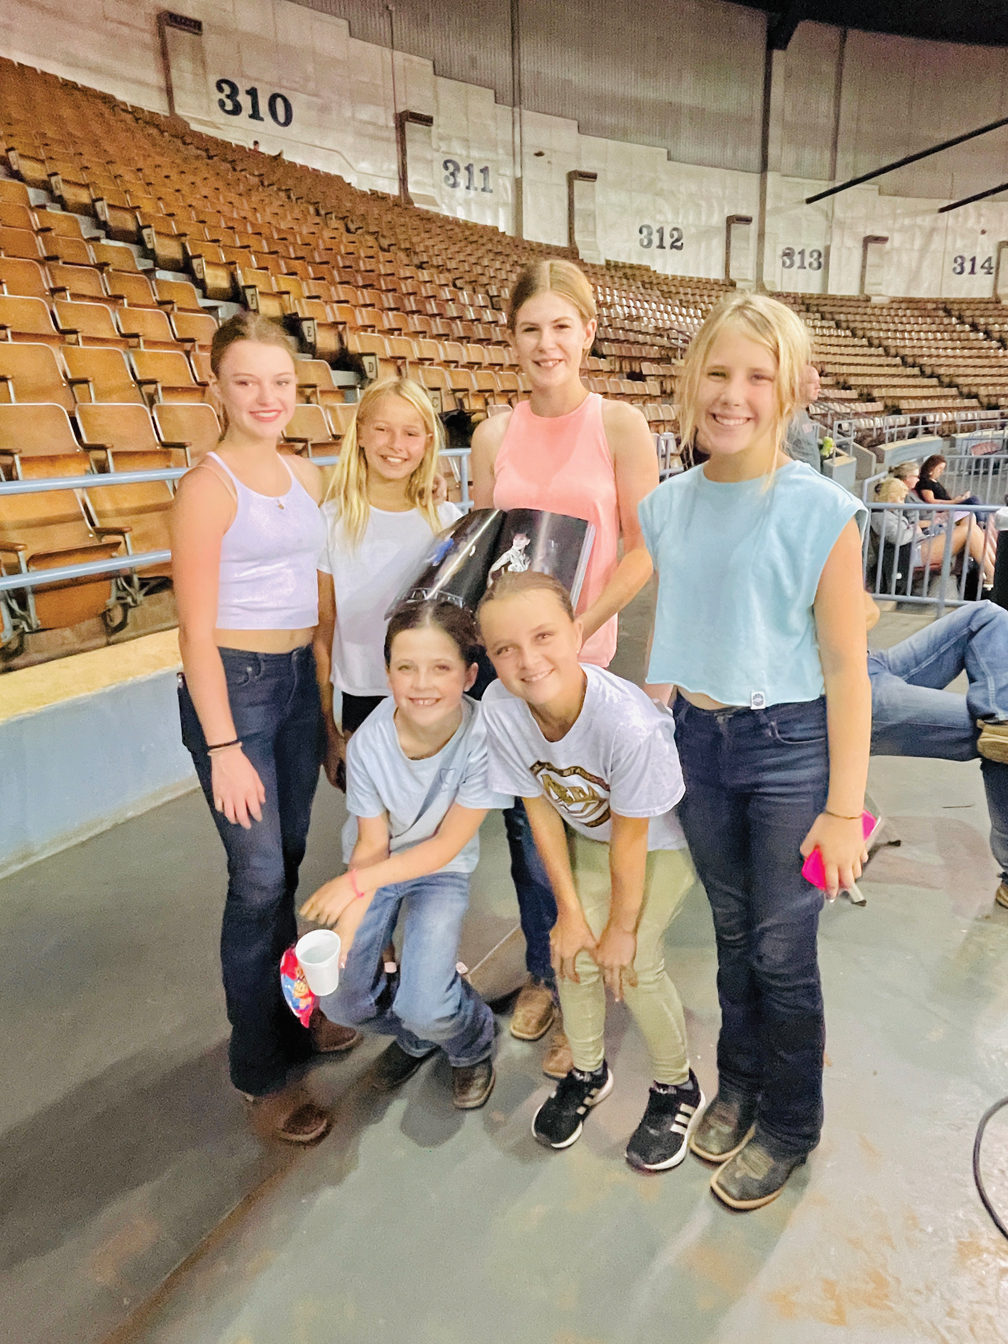 Around the Rings at the 2021 AQHYA Youth World – with the G-Man